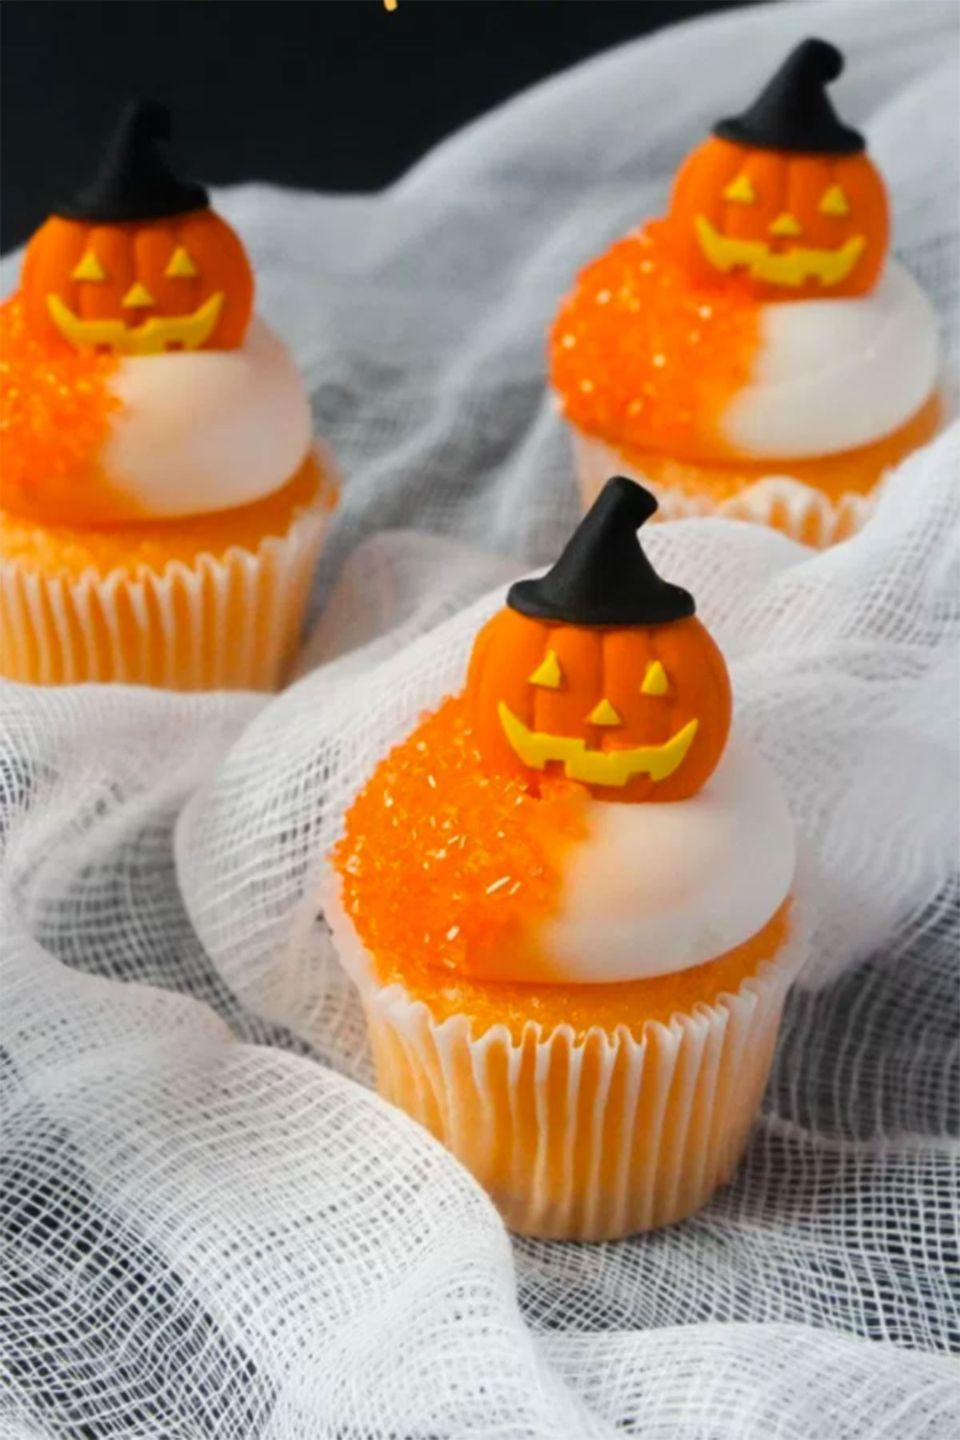 """<p>The combination of vanilla and orange flavors make these cupcakes scarily sweet.</p><p><strong>Get the recipe at <a href=""""http://thesoccermomblog.com/2016/09/17/orange-halloween-cupcakes/"""" rel=""""nofollow noopener"""" target=""""_blank"""" data-ylk=""""slk:The Soccer Mom Blog"""" class=""""link rapid-noclick-resp"""">The Soccer Mom Blog</a>. </strong></p>"""